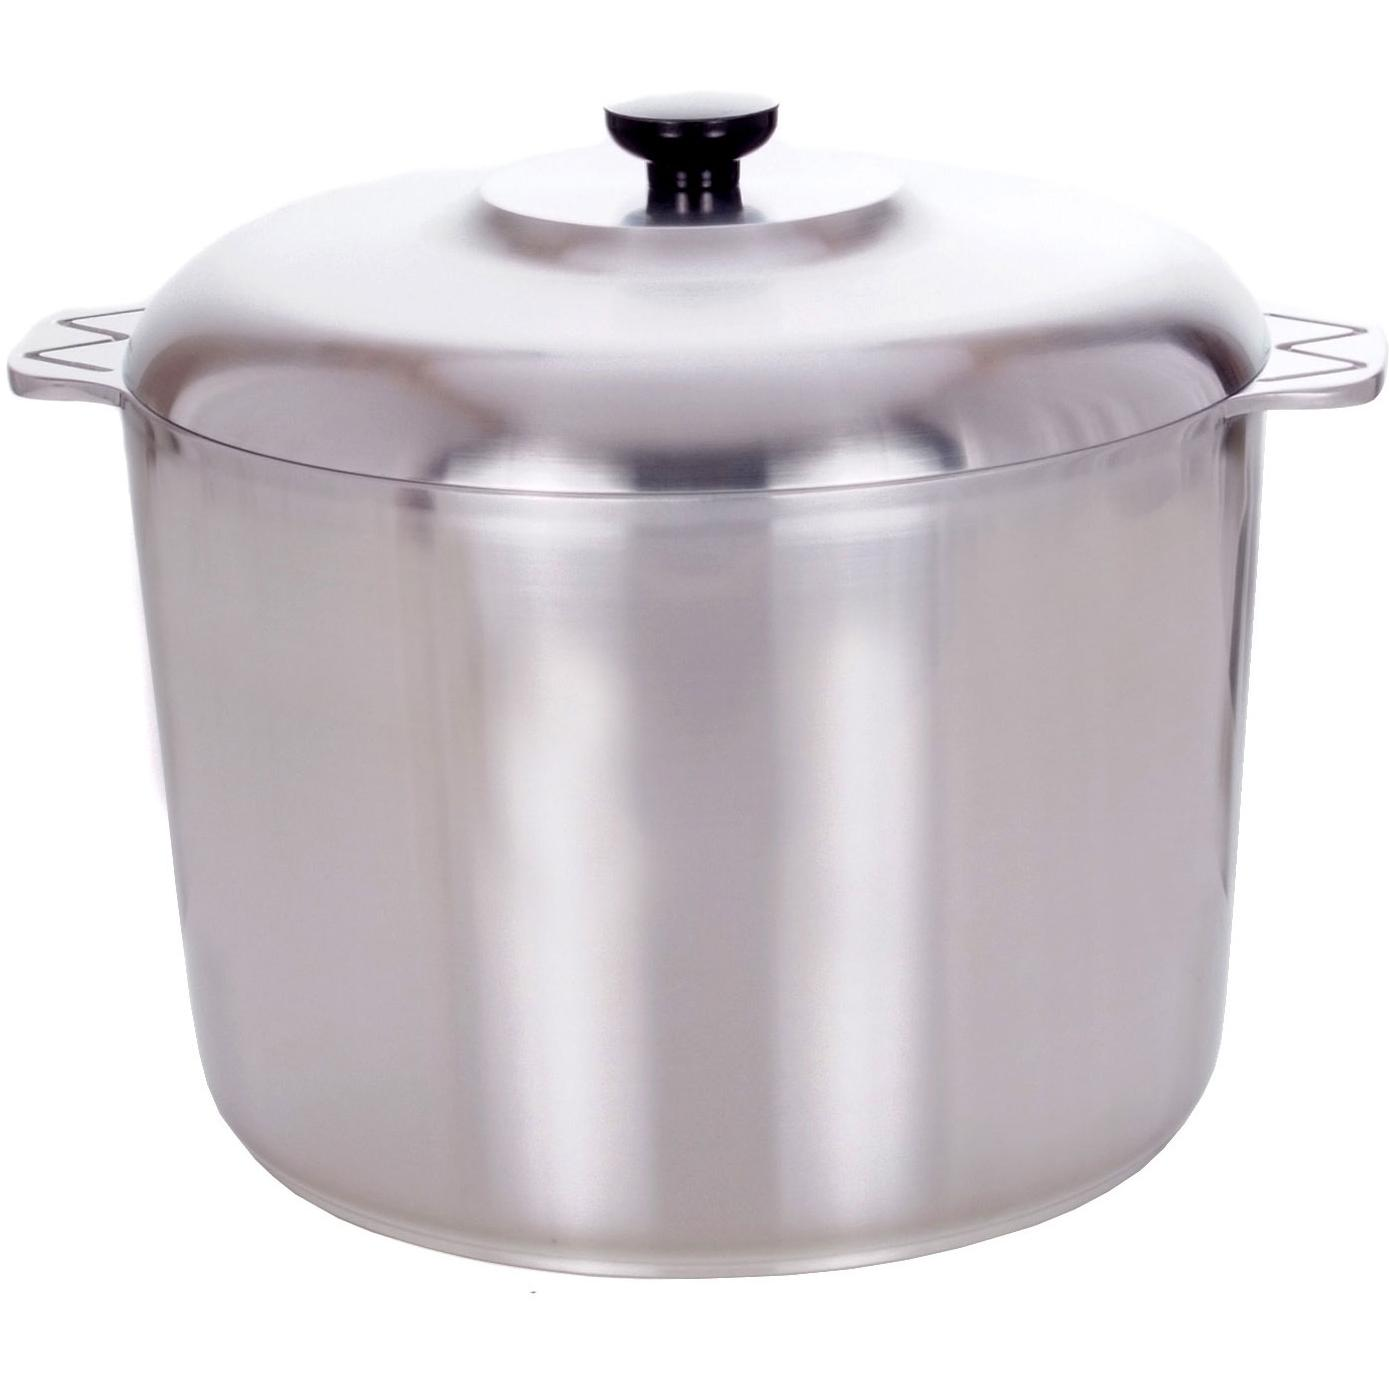 Cajun Cookware Pots 14 Quart Aluminum Stock Pot